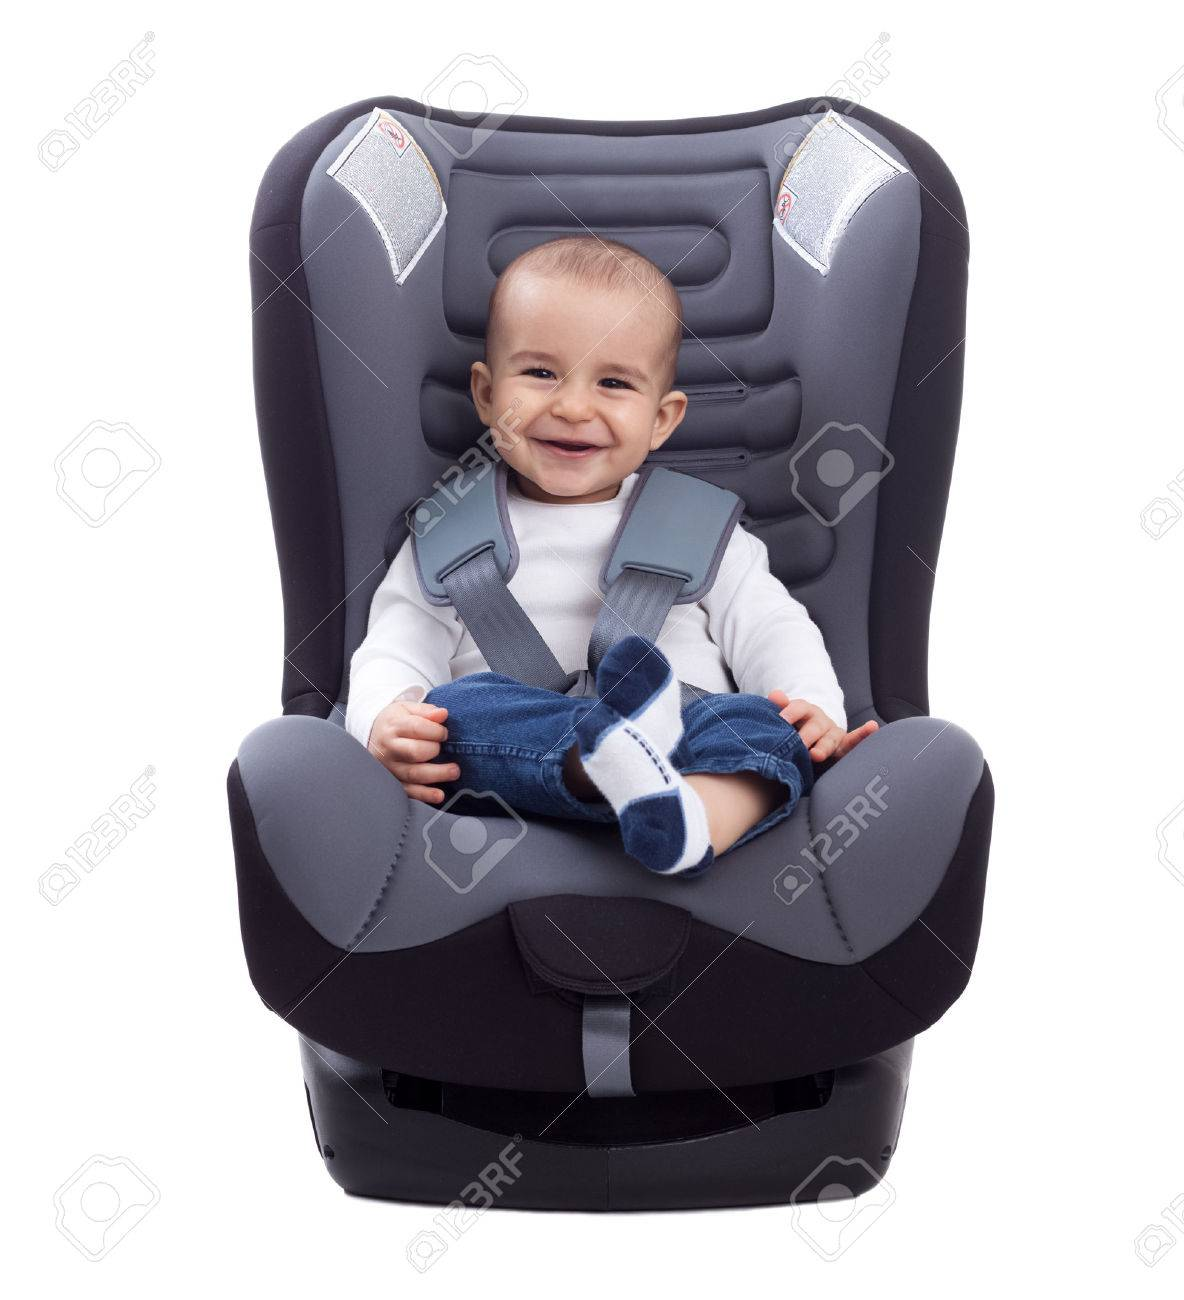 Infant Baby Child Sitting In A Car Seat